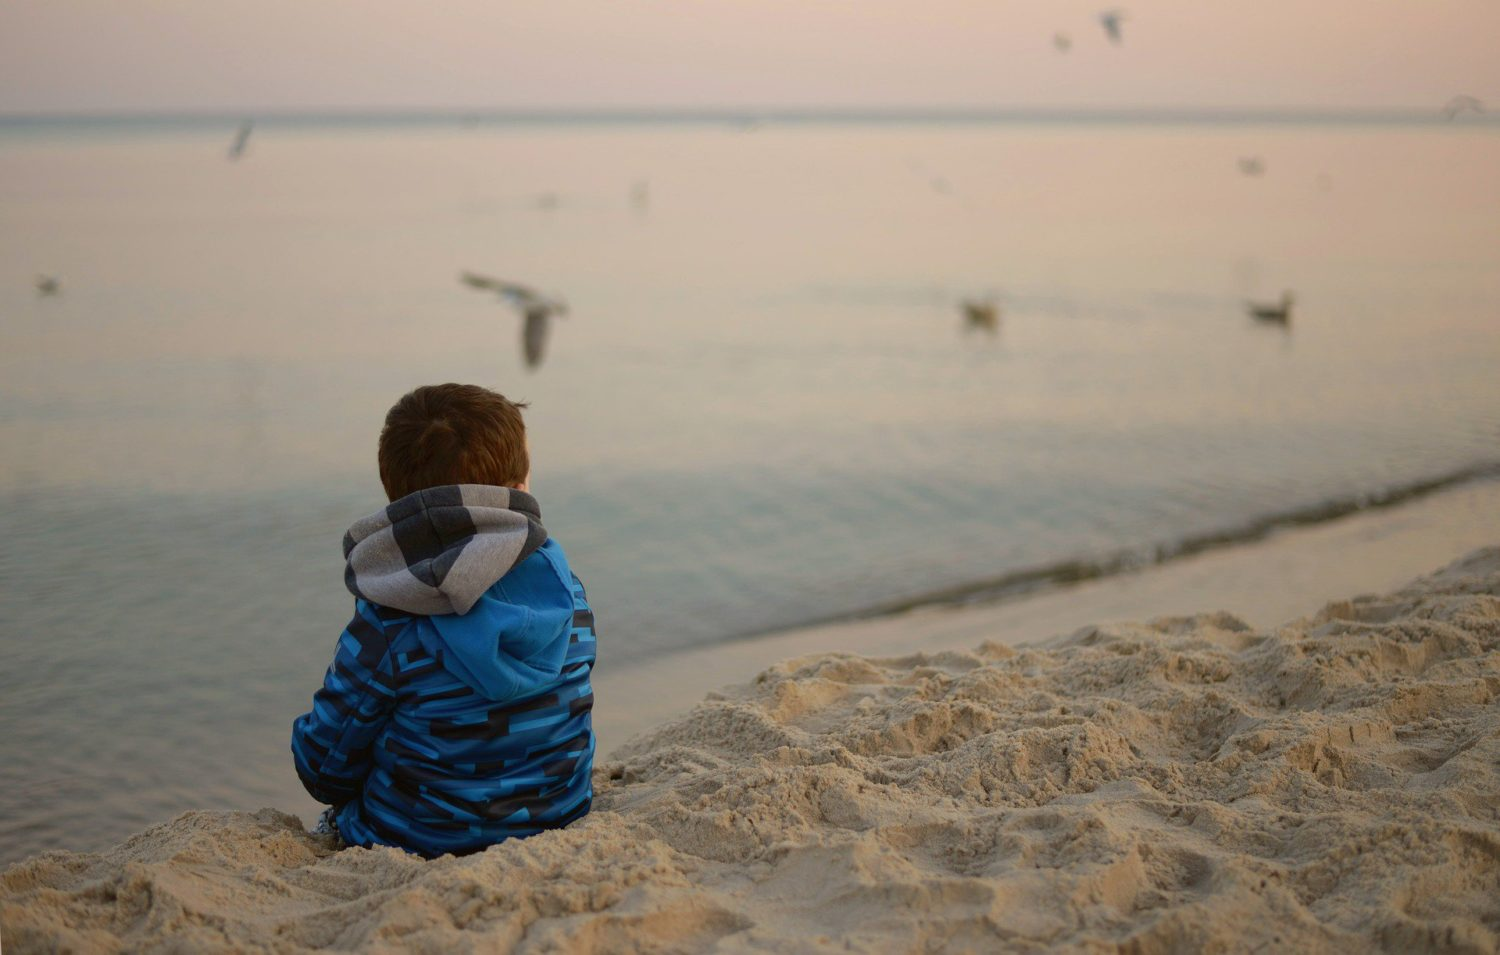 Thumb image for the post on Children Growing Up Around Addiction